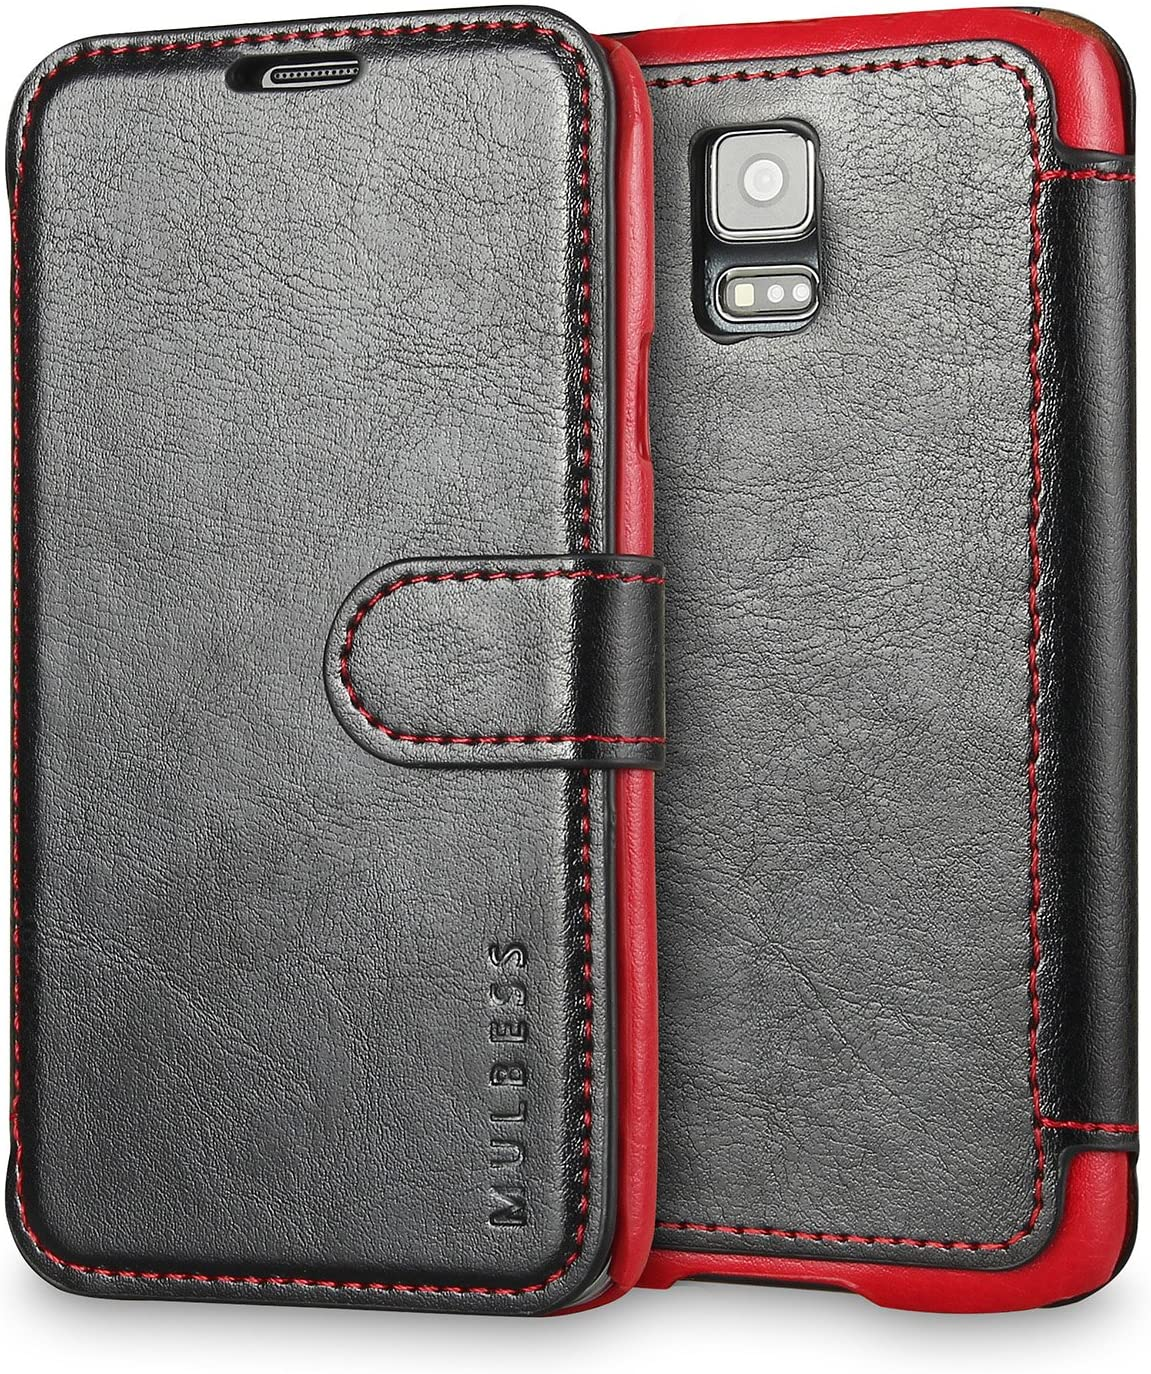 Mulbess Layered Samsung Galaxy S5 Leather Case,Flip Phone Case Wallet with Magnetic Clasp for Samsung Galaxy S5 / S5 Neo Cover, Black